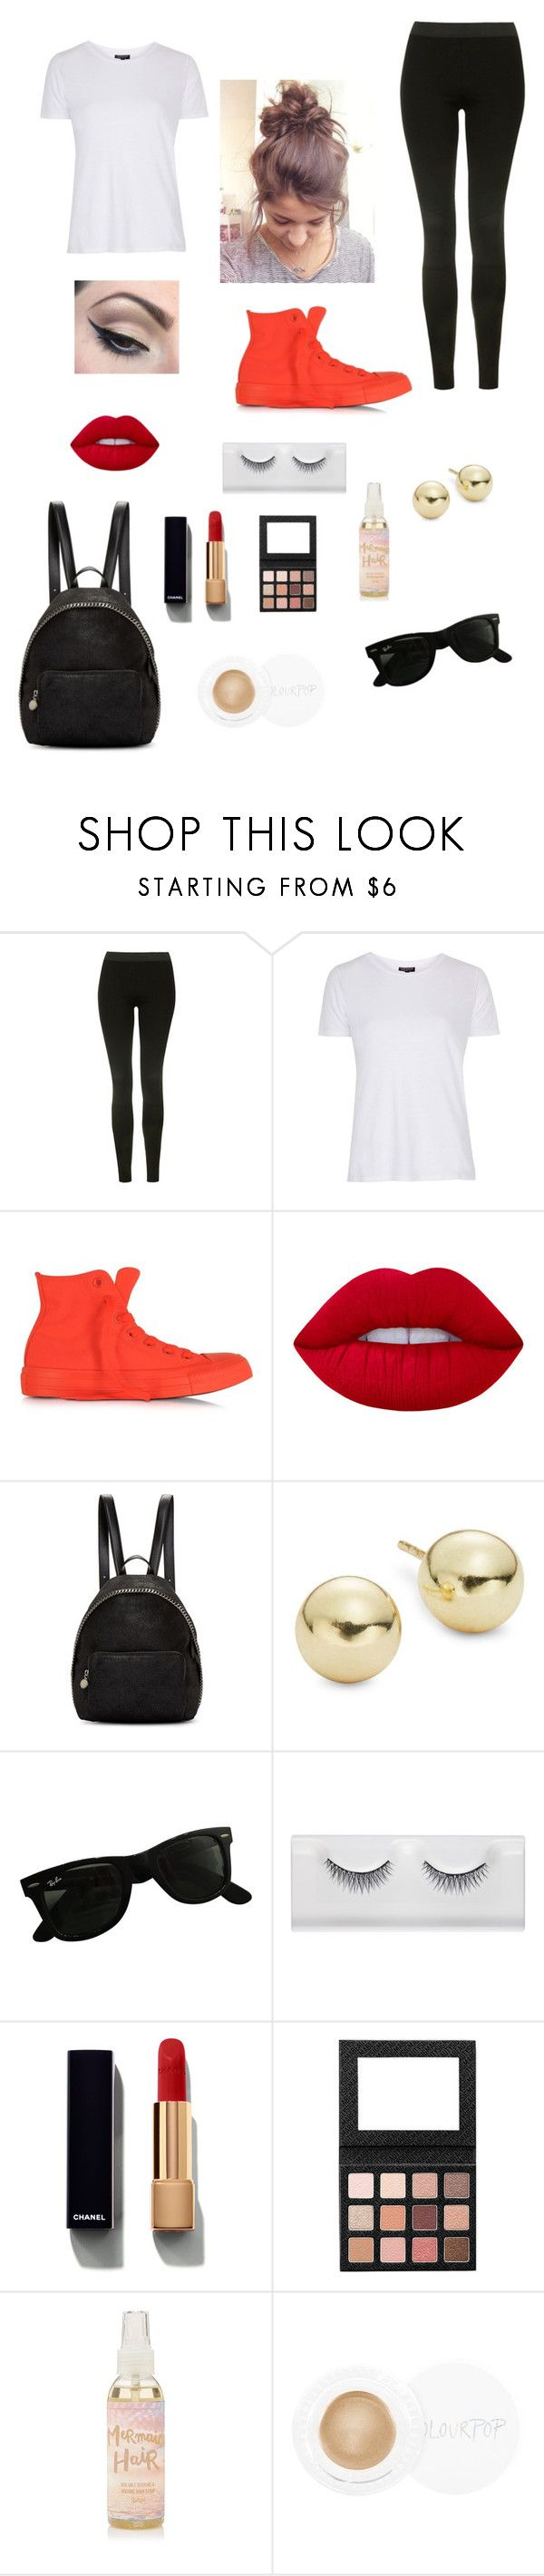 """""""Wham Bam music festival"""" by sarahbear231 on Polyvore featuring Topshop, Converse, Lime Crime, Mehron, STELLA McCARTNEY, Lord & Taylor, Ray-Ban and Chanel"""